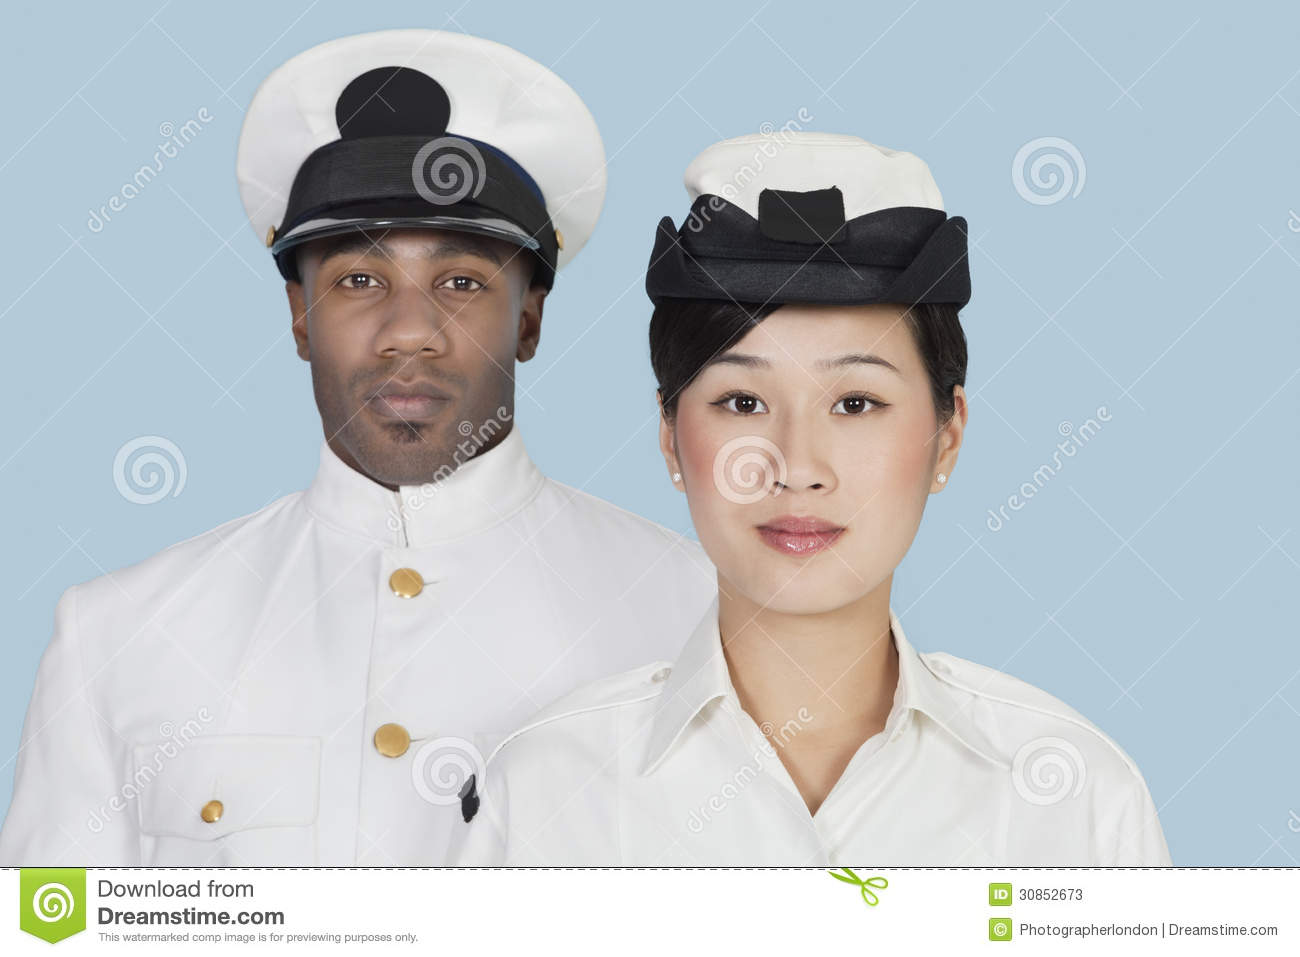 Download Portrait Of Two Multi-ethnic US Navy Officers Over Light Blue Background Stock Image - Image of background, blue: 30852673